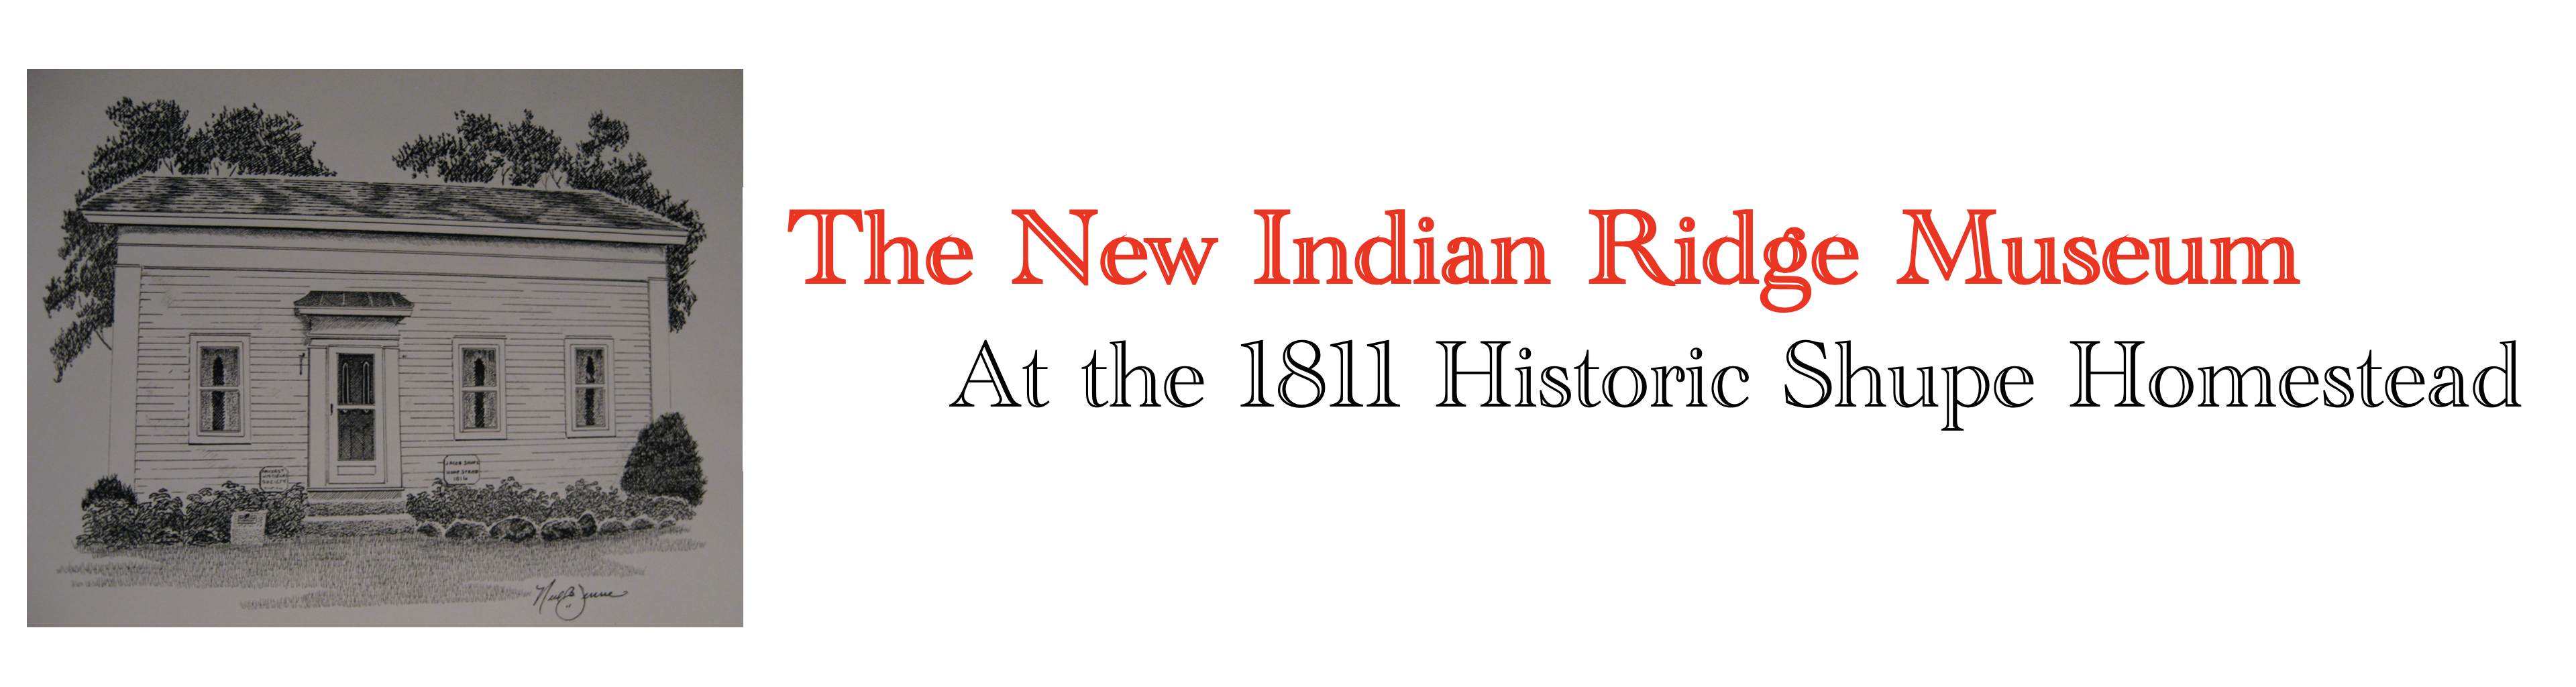 Logo for The New Indian Ridge Museum